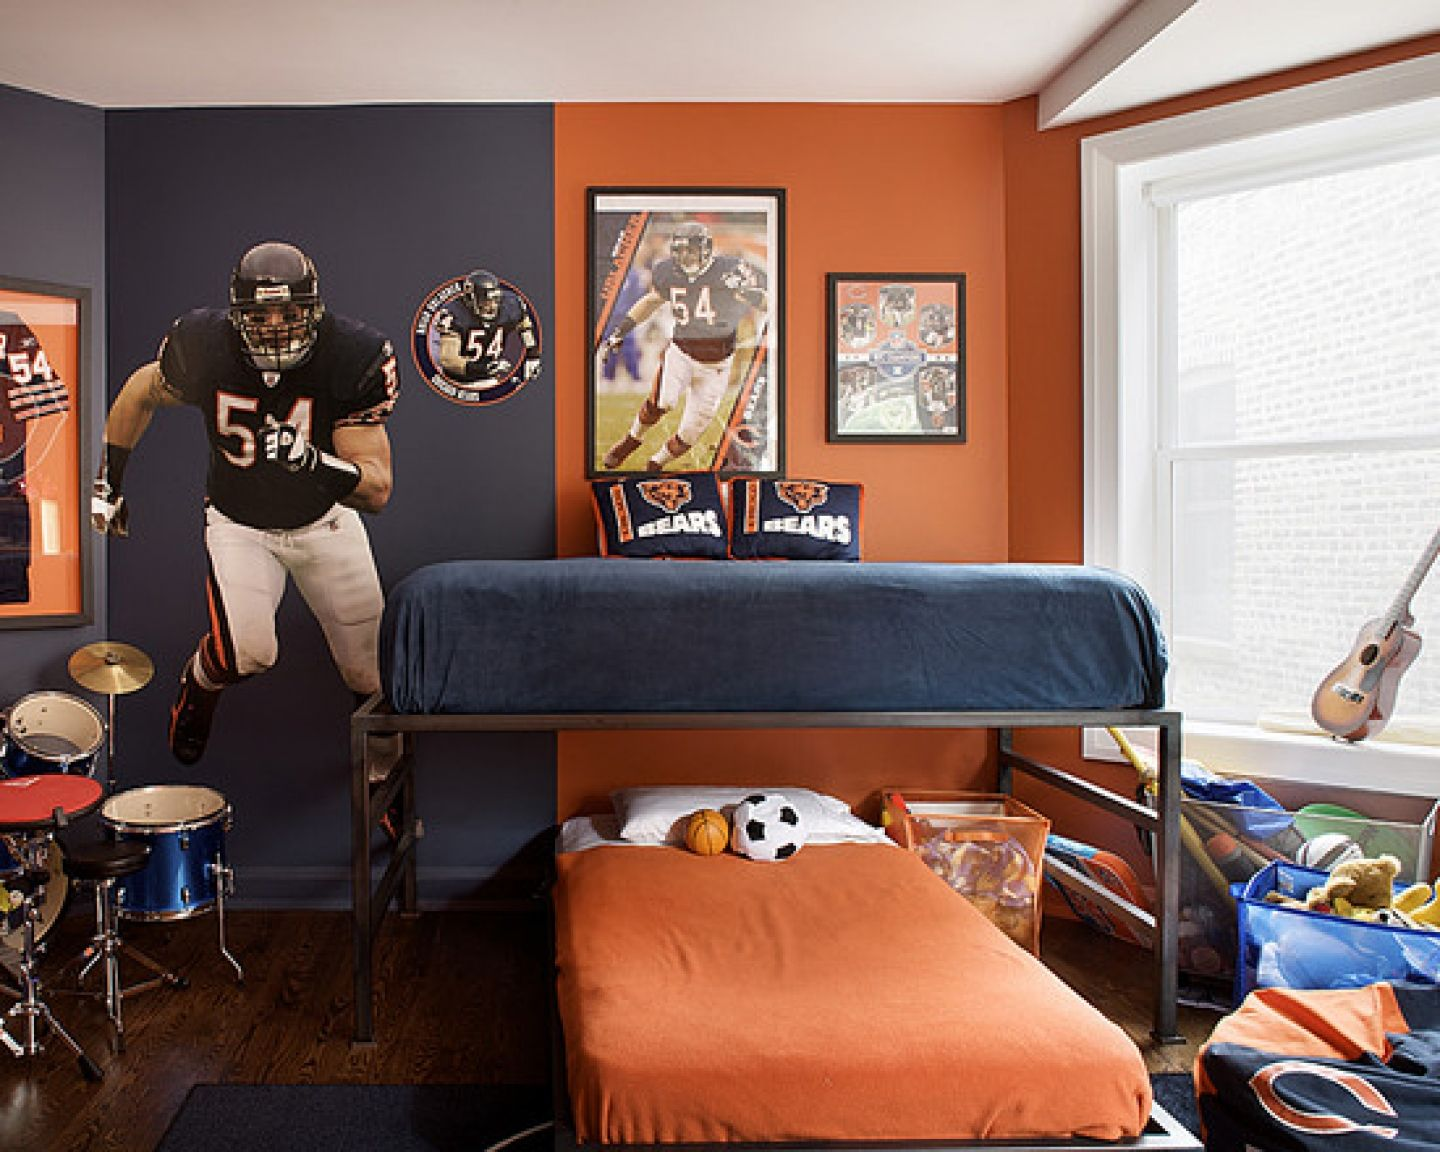 teens bedroom american football theme for your teen boys bedroom football superstar teen boys bedroom design with famous player cutting sticker on navy - Boy Bedroom Theme